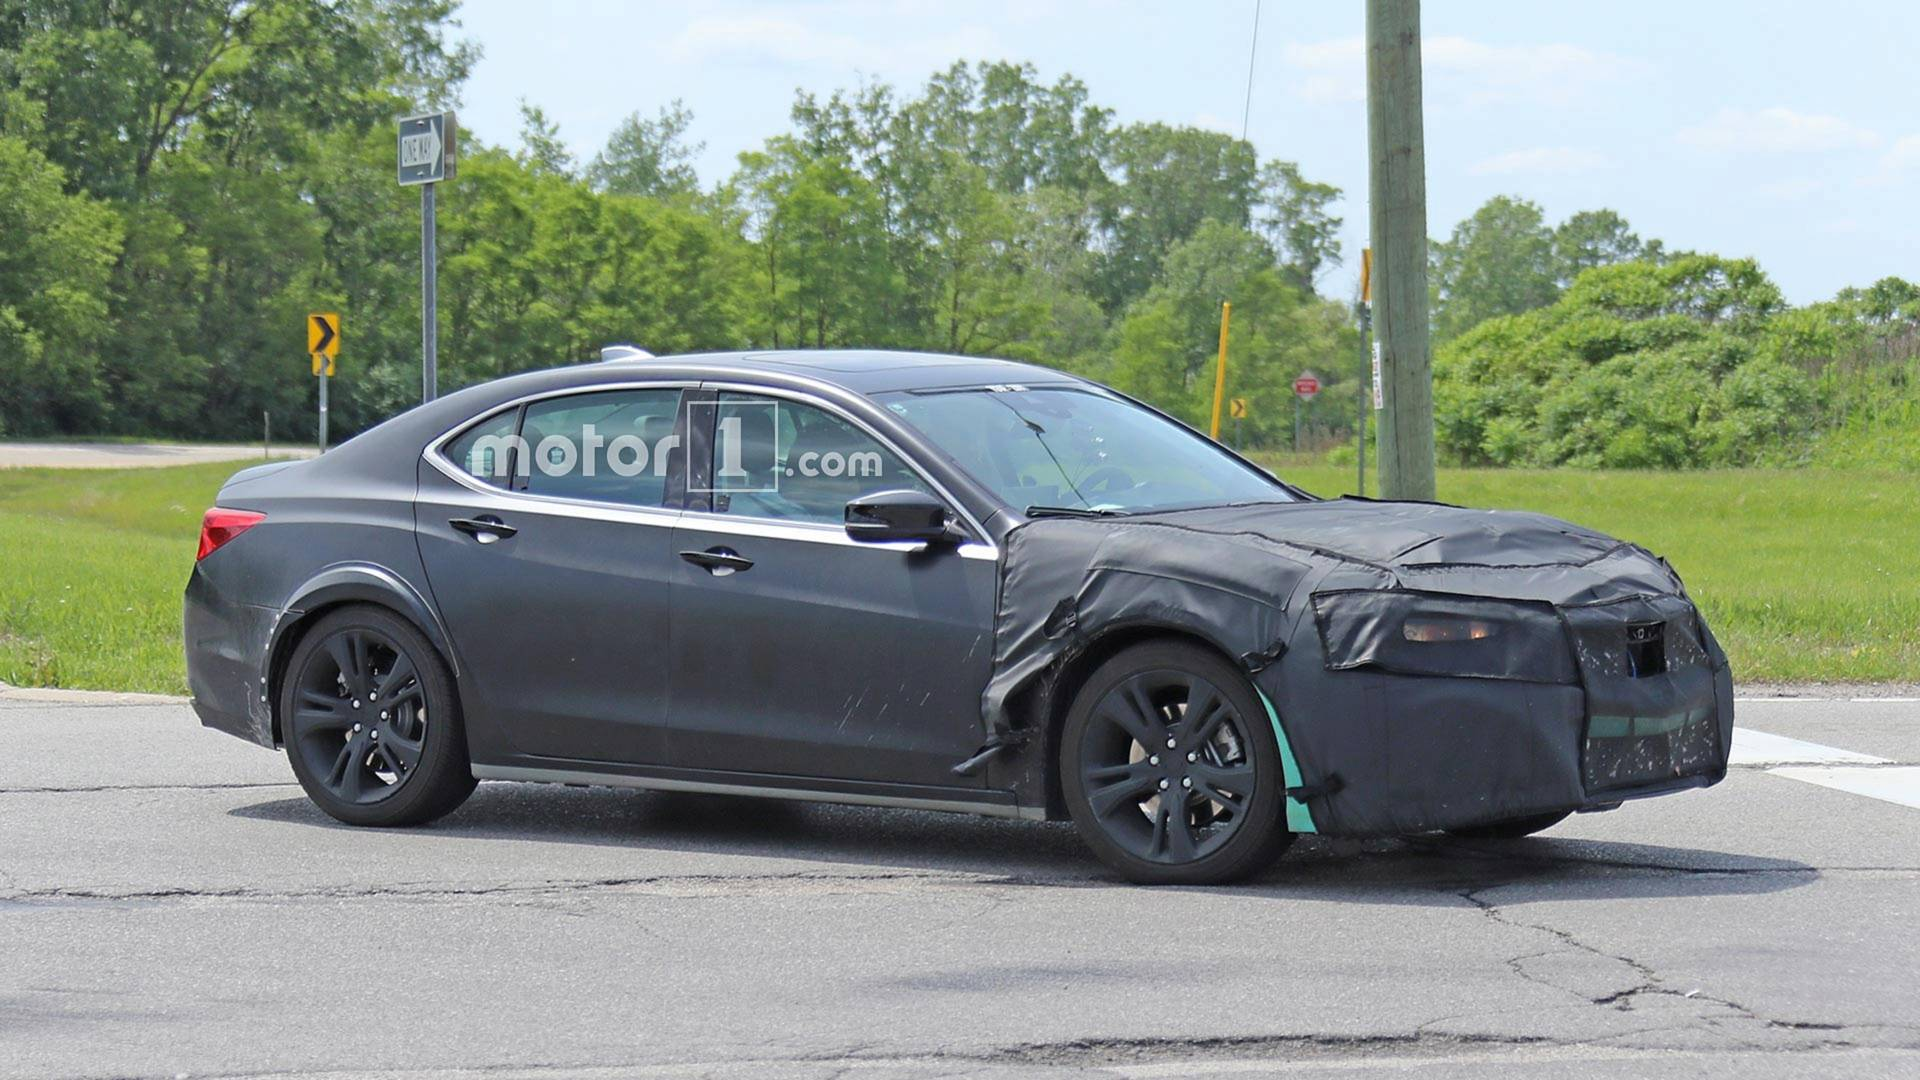 Bizarre Turquoise Acura Tlx Test Mule Spied On The Road